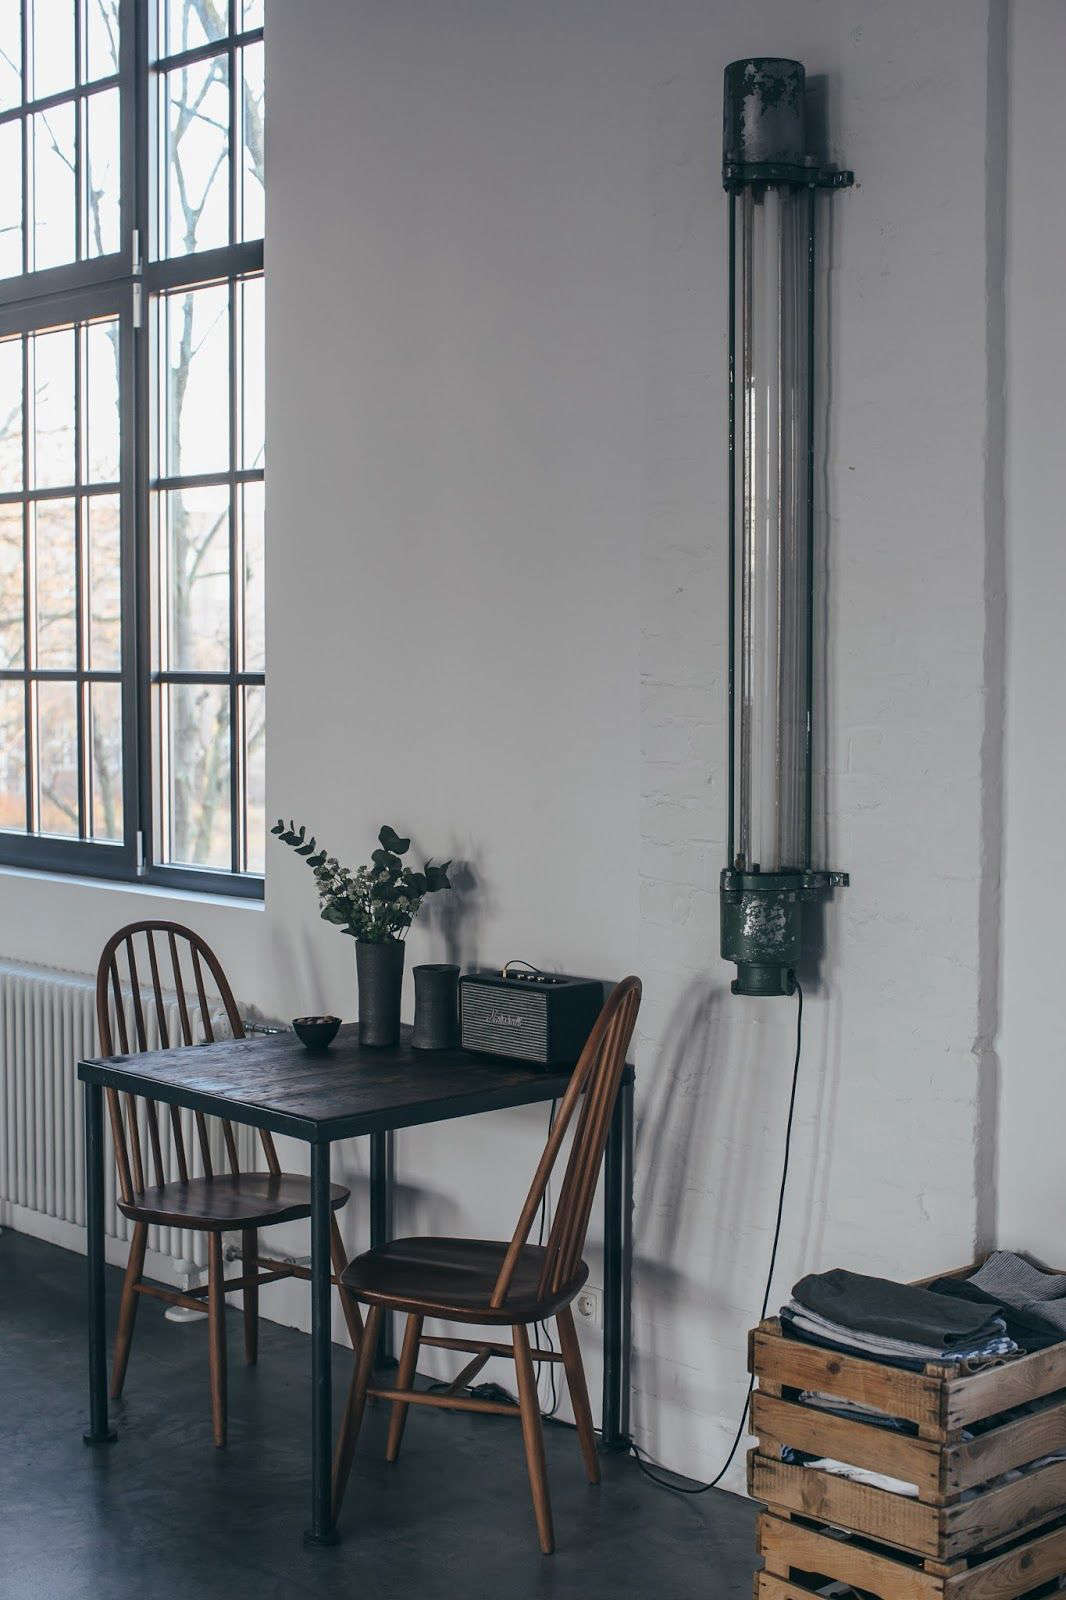 Above; A vintage factory light hangs next to a table for two with a pair of old Windsors.